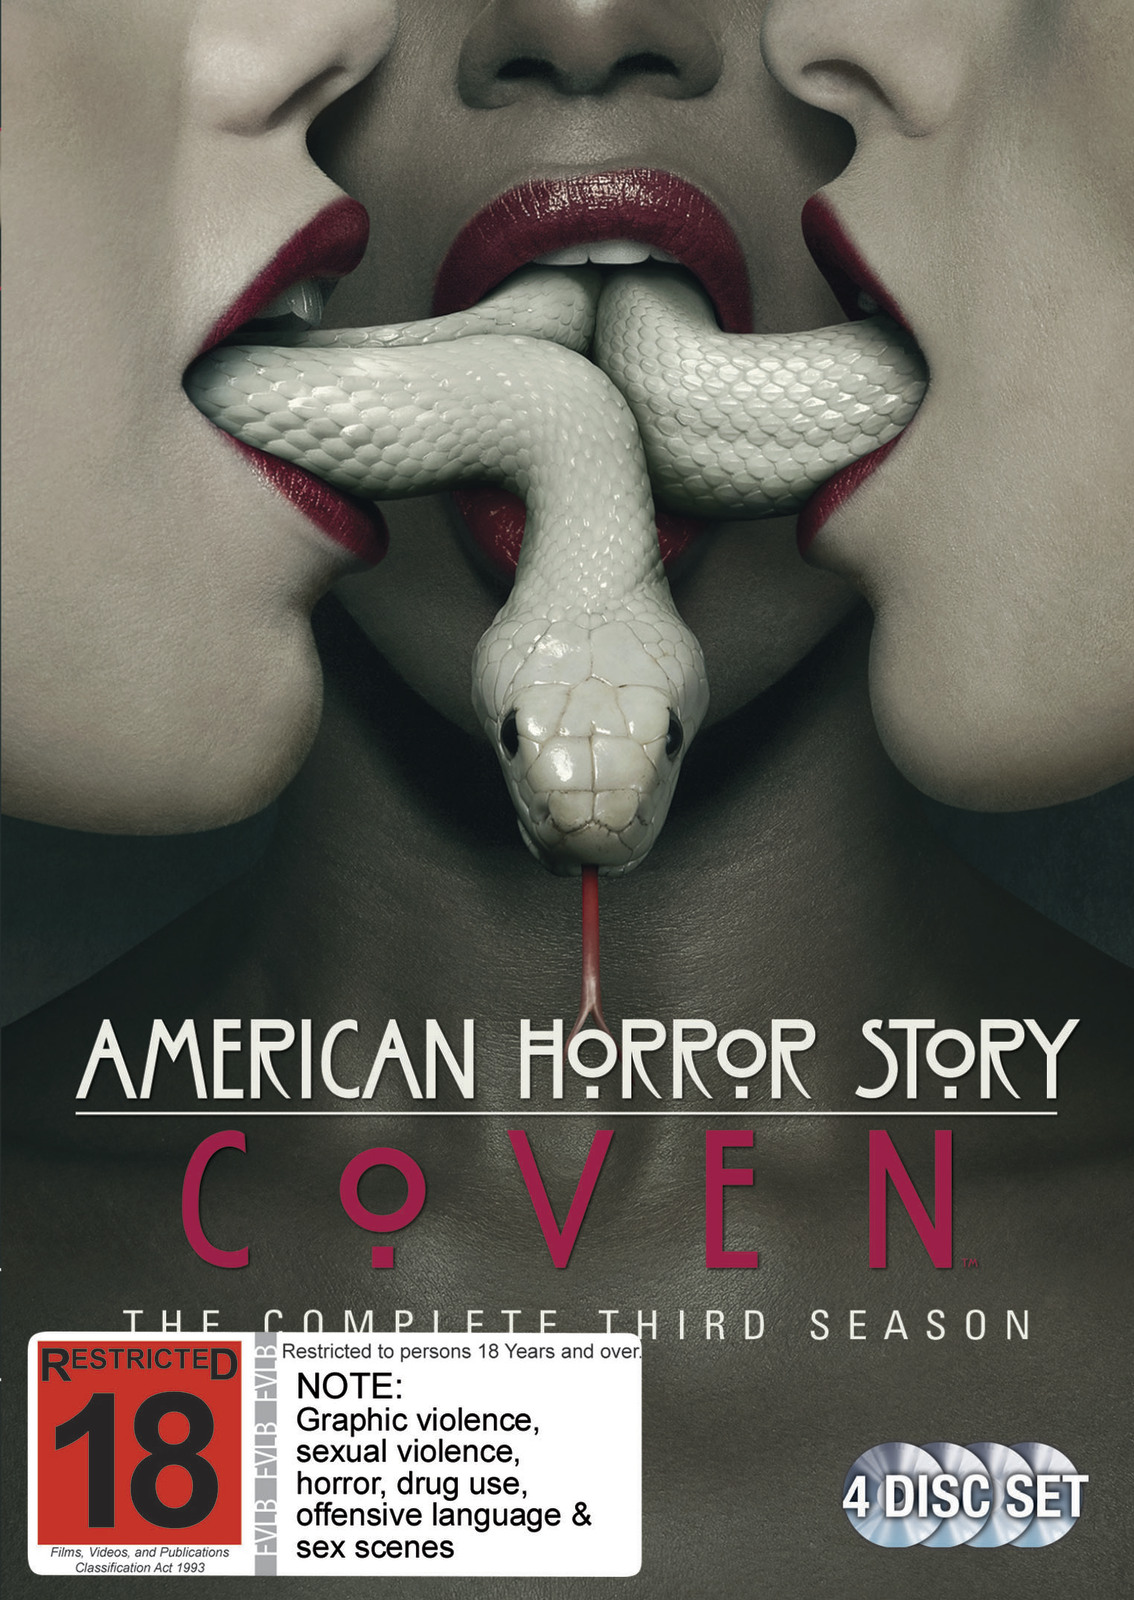 American Horror Story: Coven - The Complete Third Season on DVD image